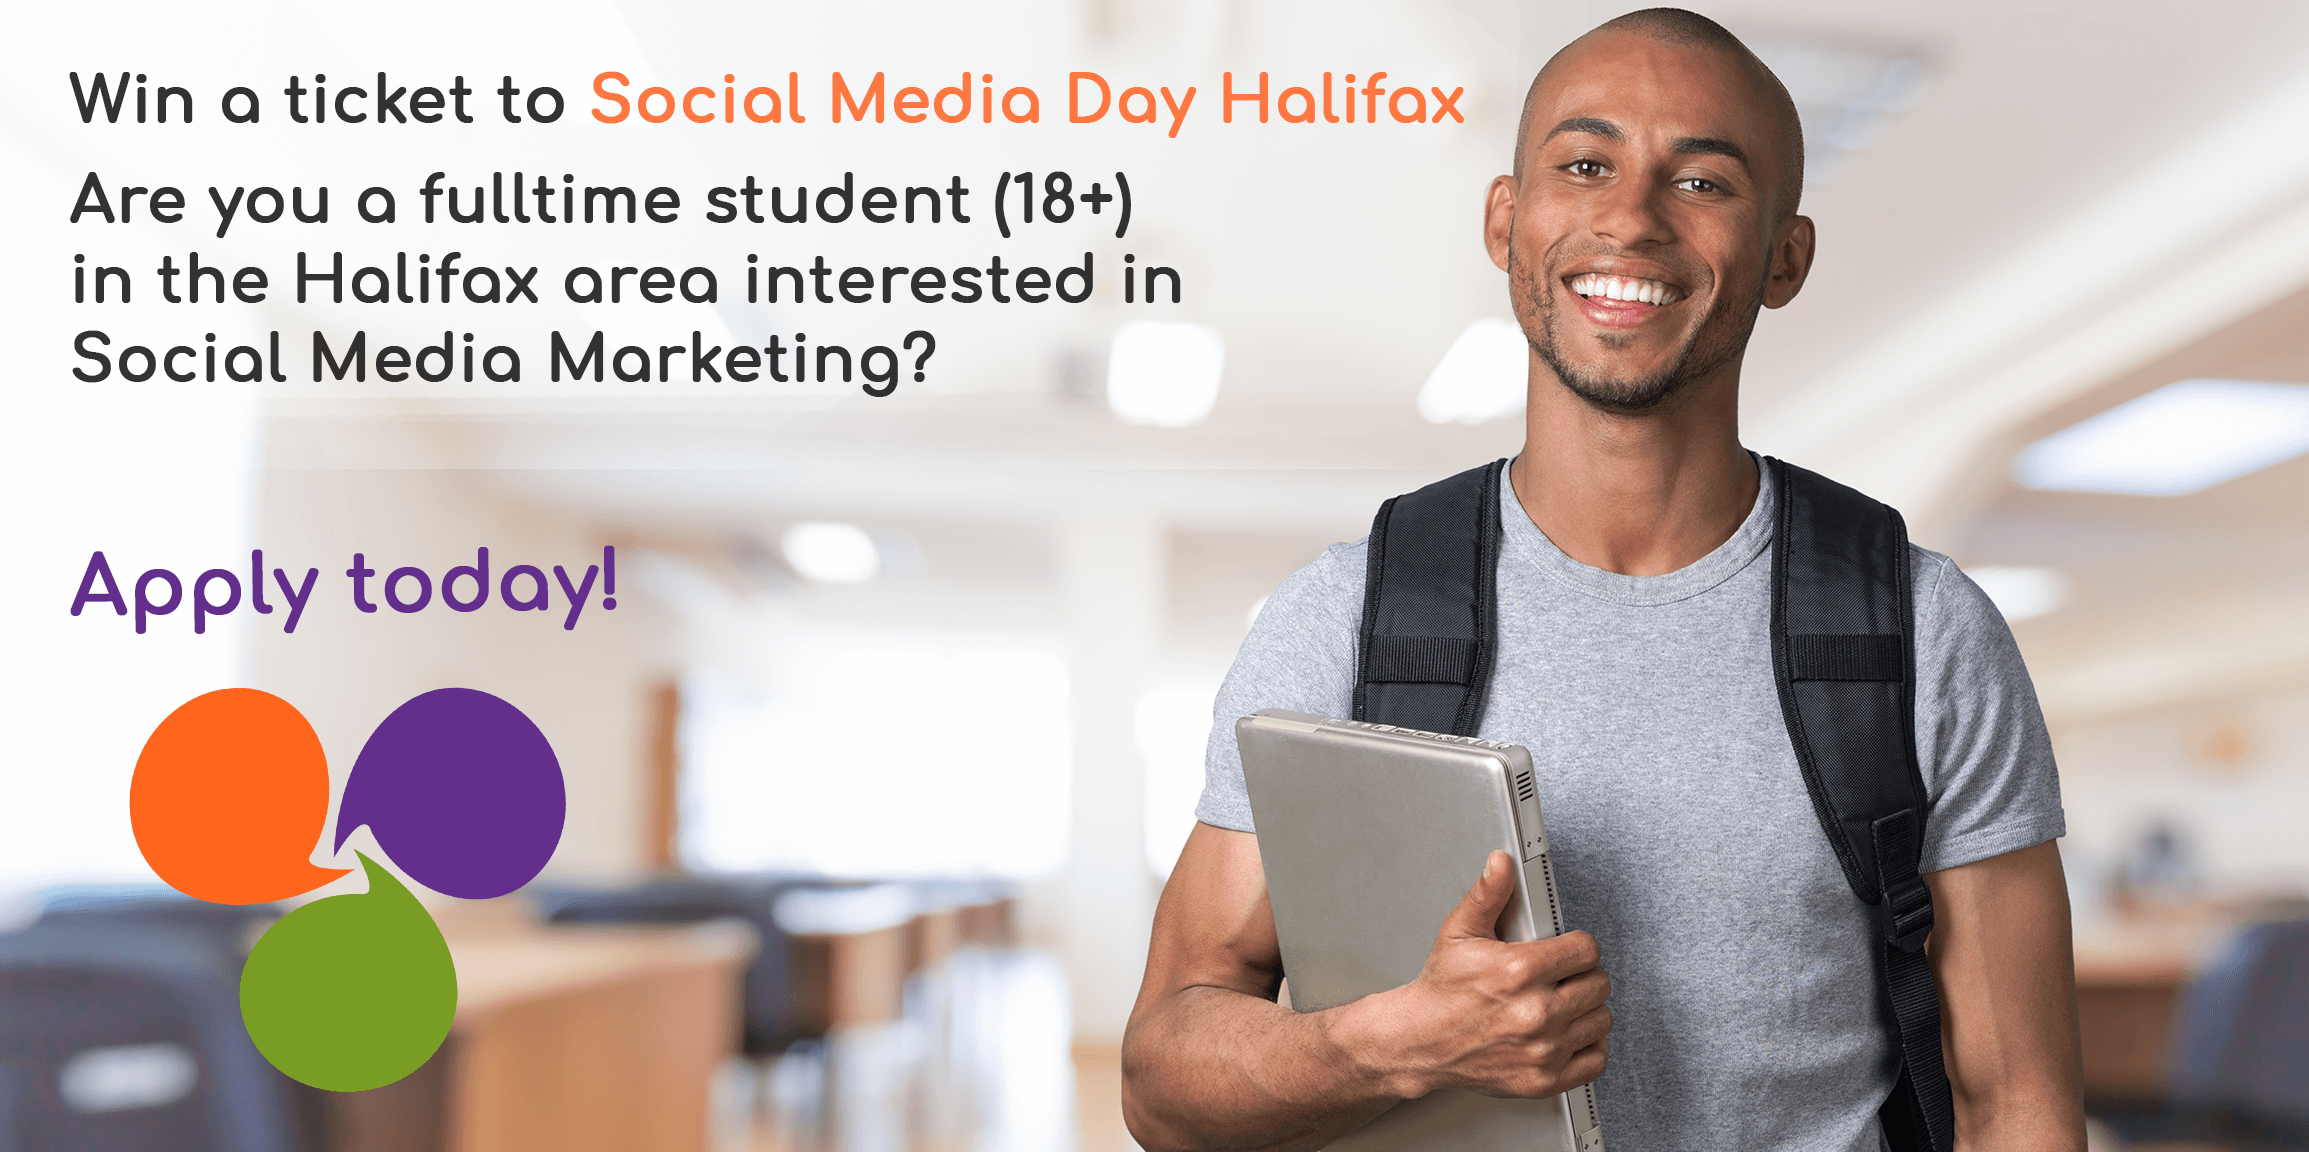 Social Media Day Halifax Send-a-Student Sponsorship